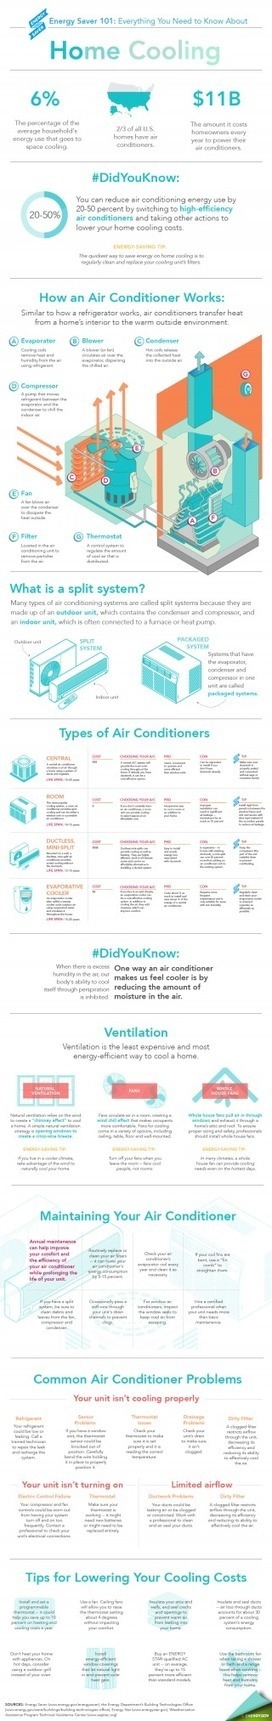 Energy Saver 101 Infographic: Home Cooling | Building energy system management | Scoop.it